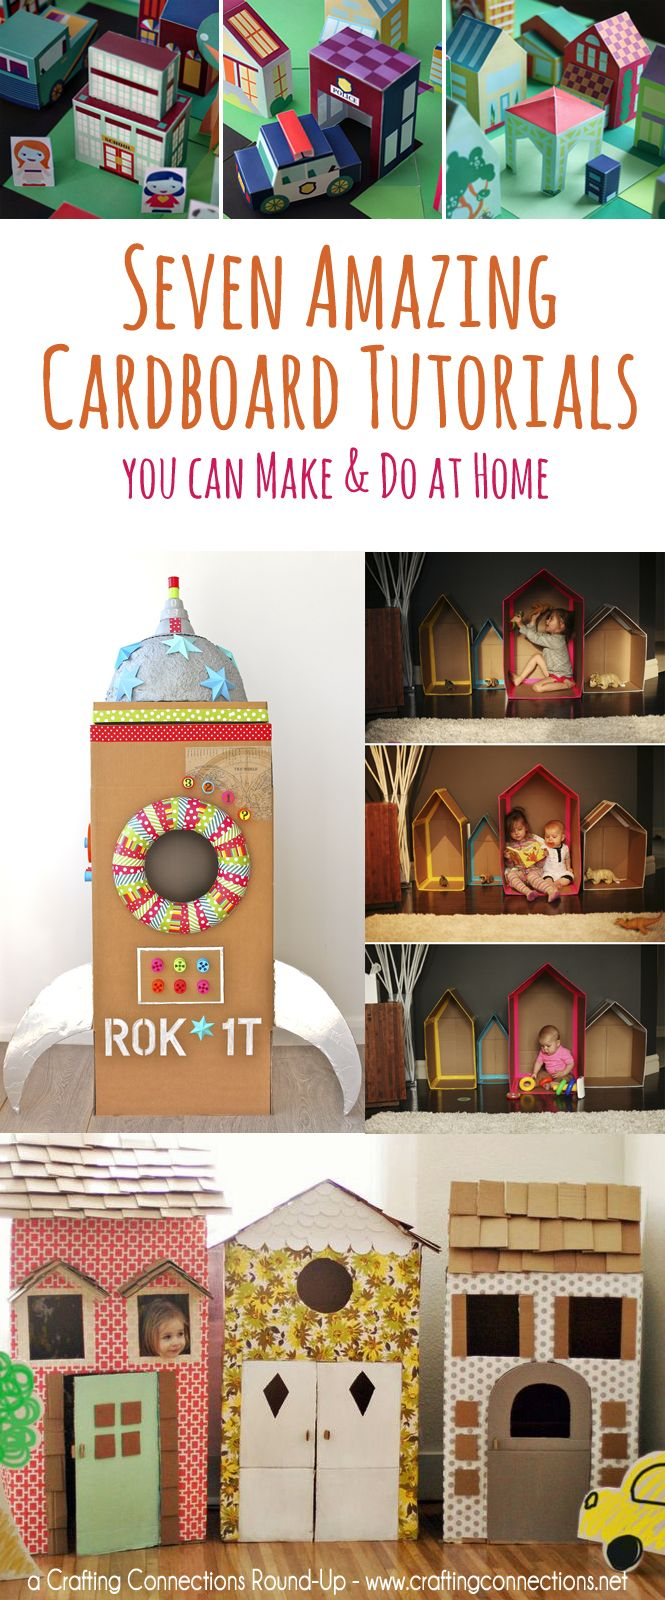 We've rounded up the very best and our personal favorite cardboard structures, houses, rockets, and more - each with a tutorial included, so you and your little ones can try them too! A Round-Up by @CraftingConnections